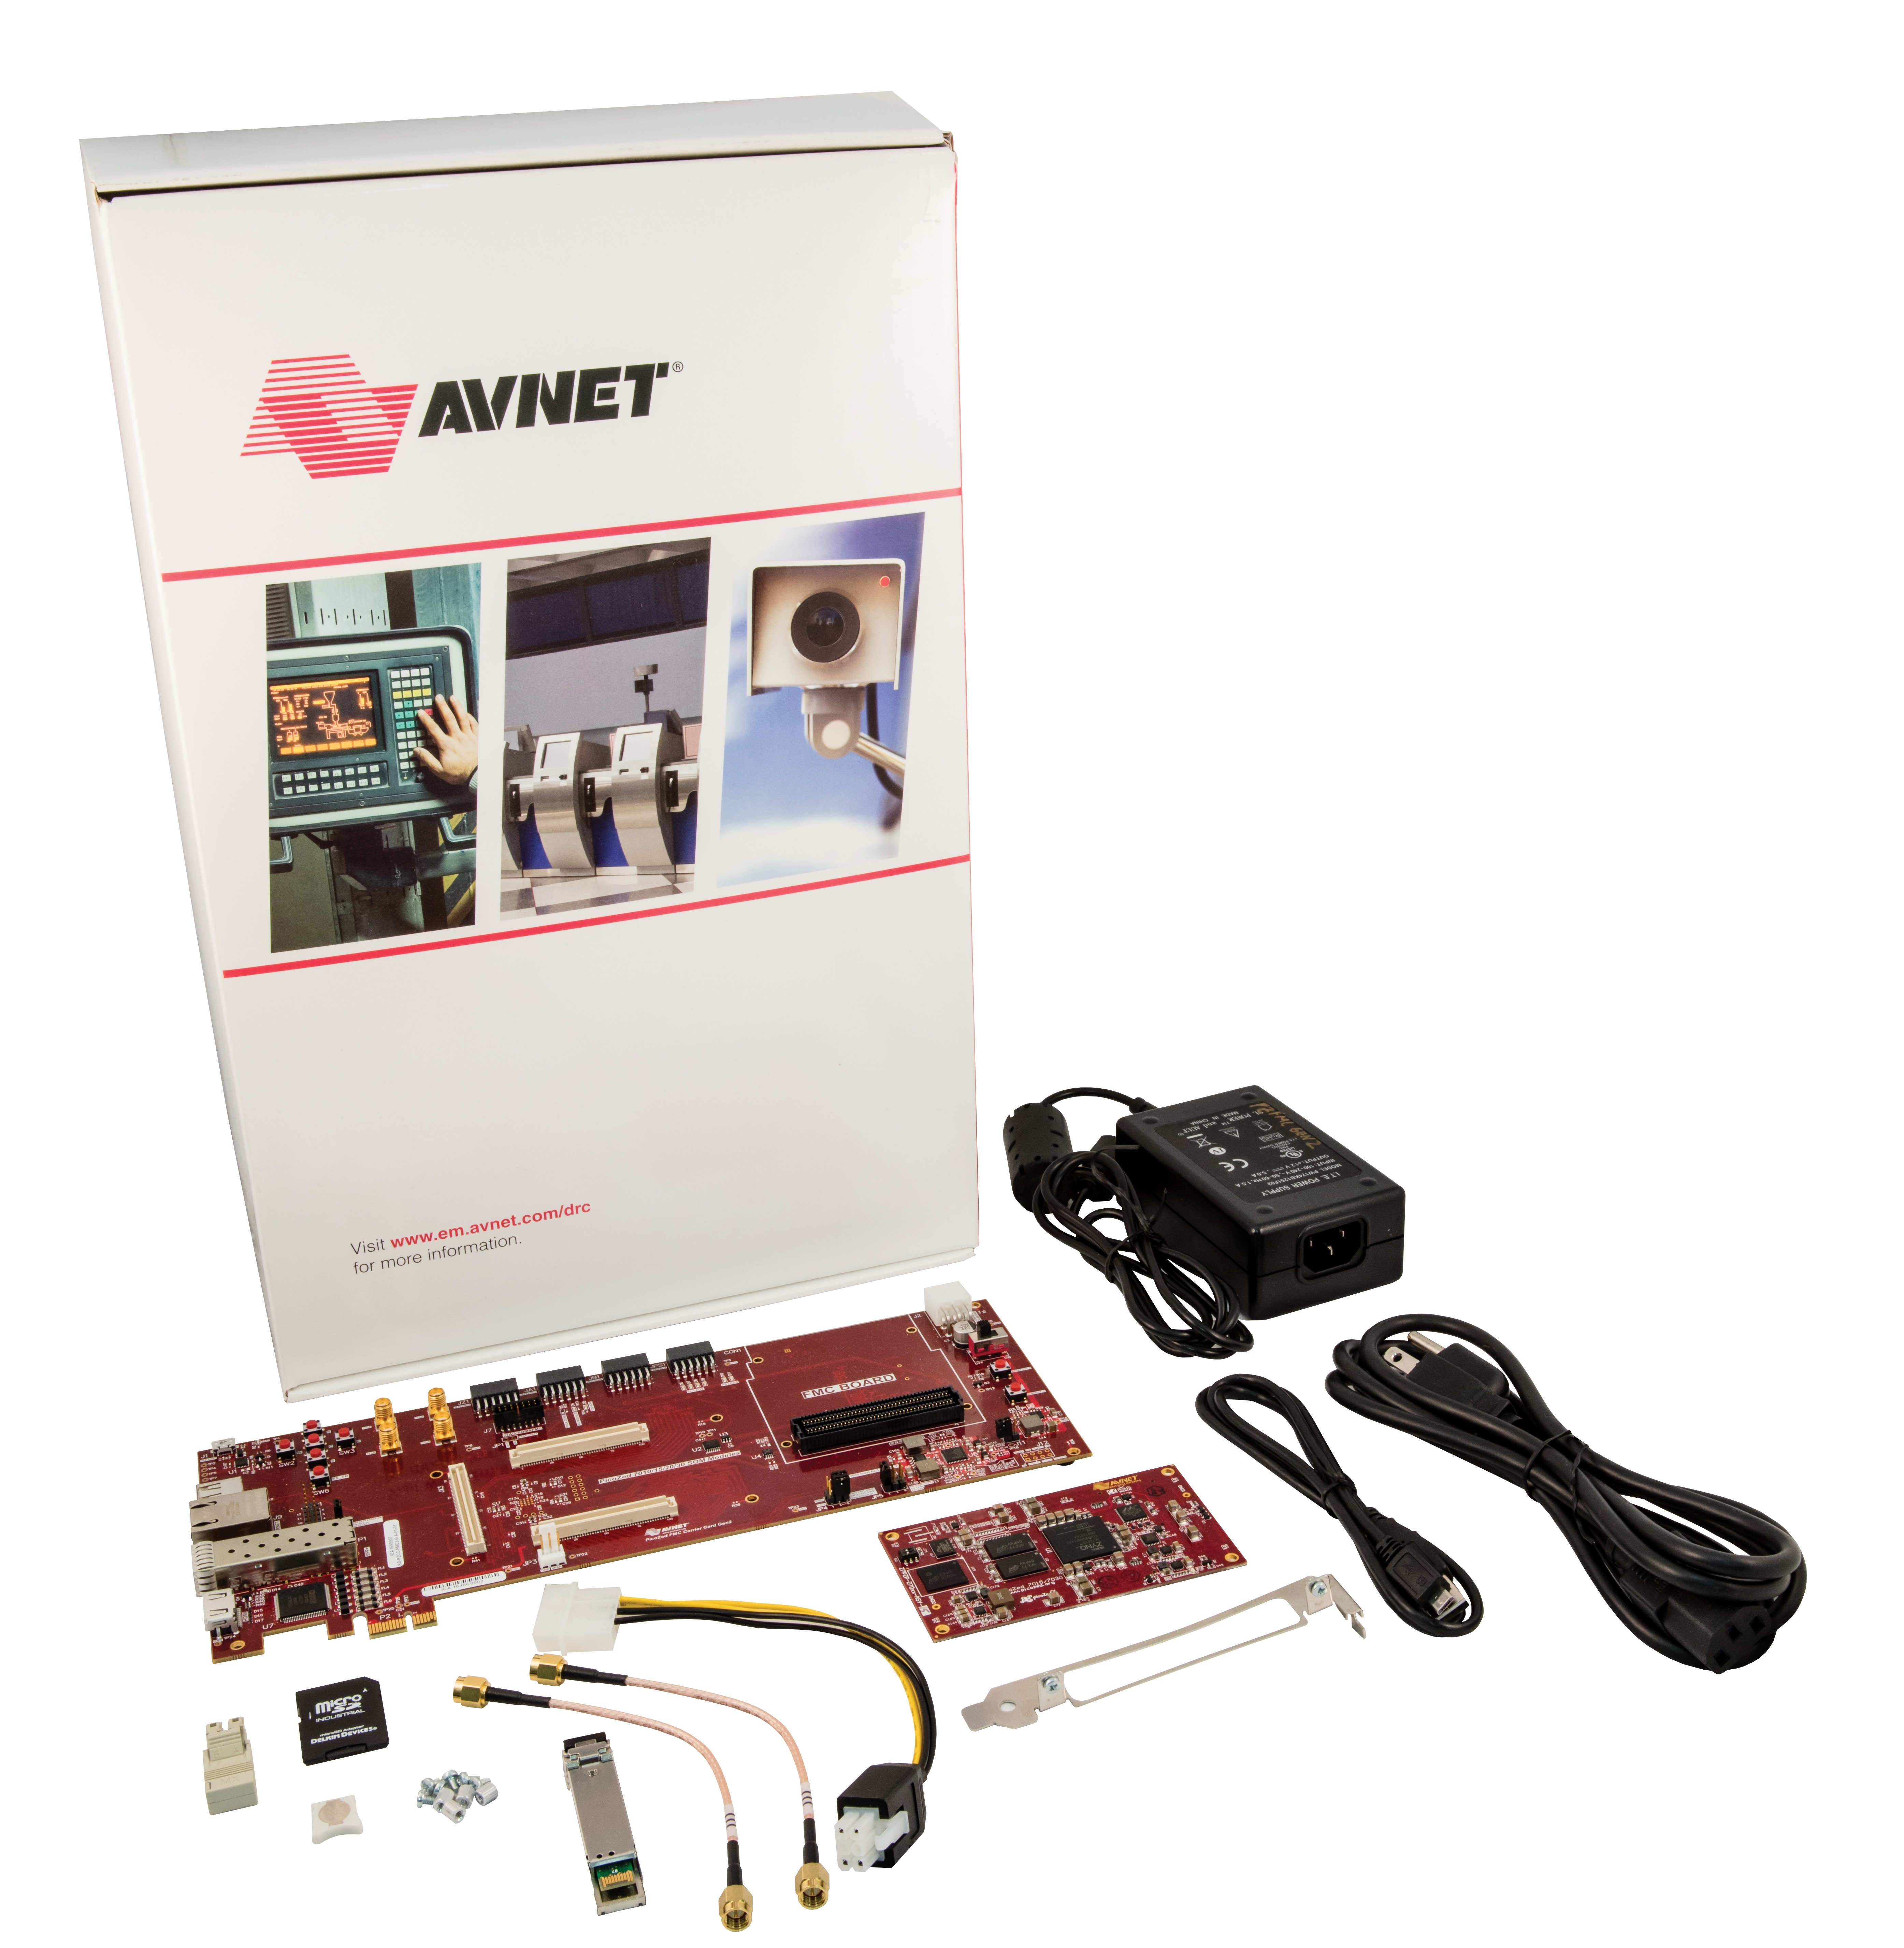 New Zynq Transceiver Evaluation Kit from Avnet Electronics Marketing now available for $649. (Photo: Business Wire)